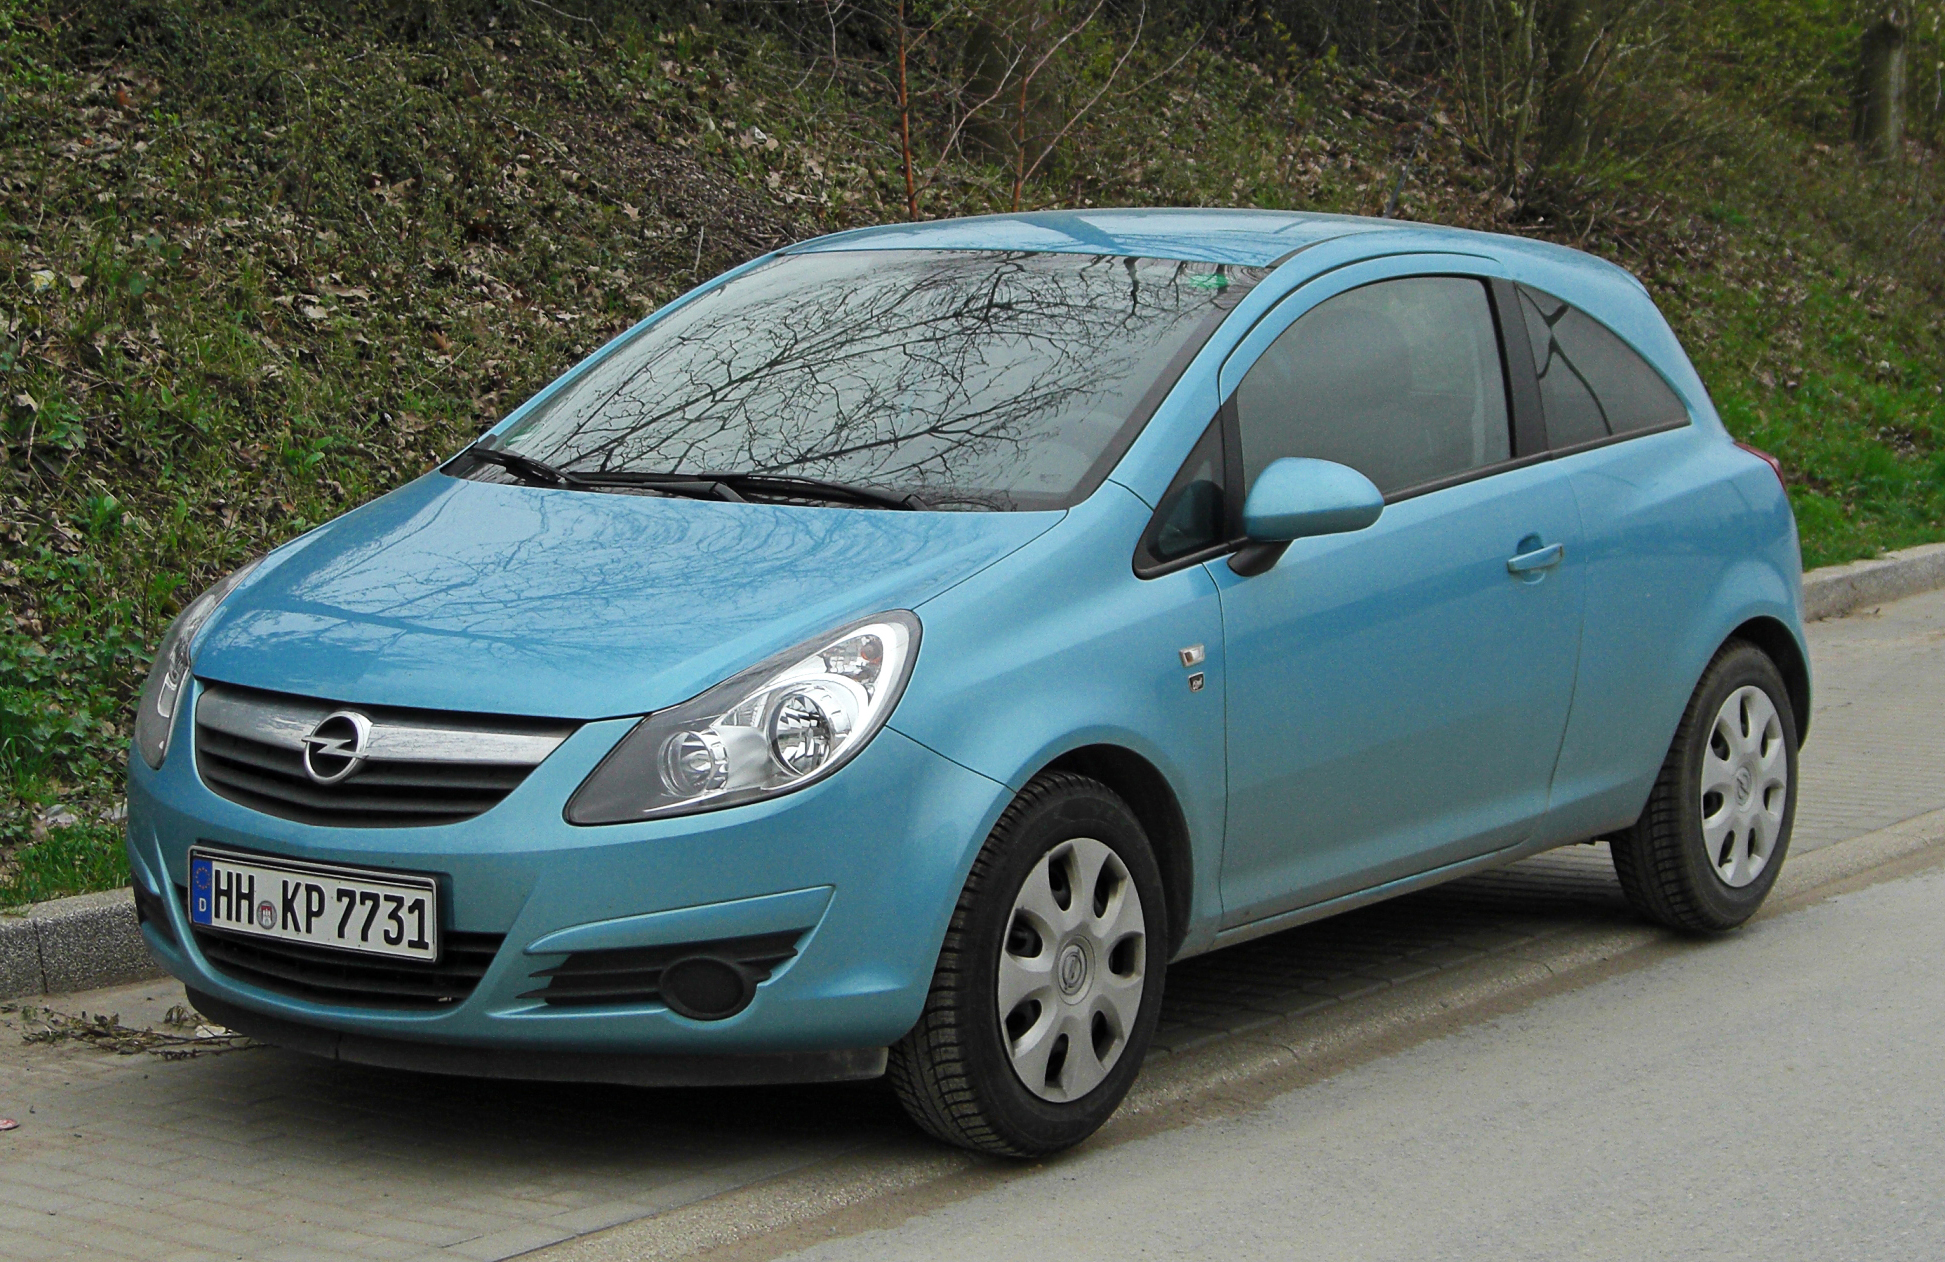 opel corsa wikipedia autos post. Black Bedroom Furniture Sets. Home Design Ideas